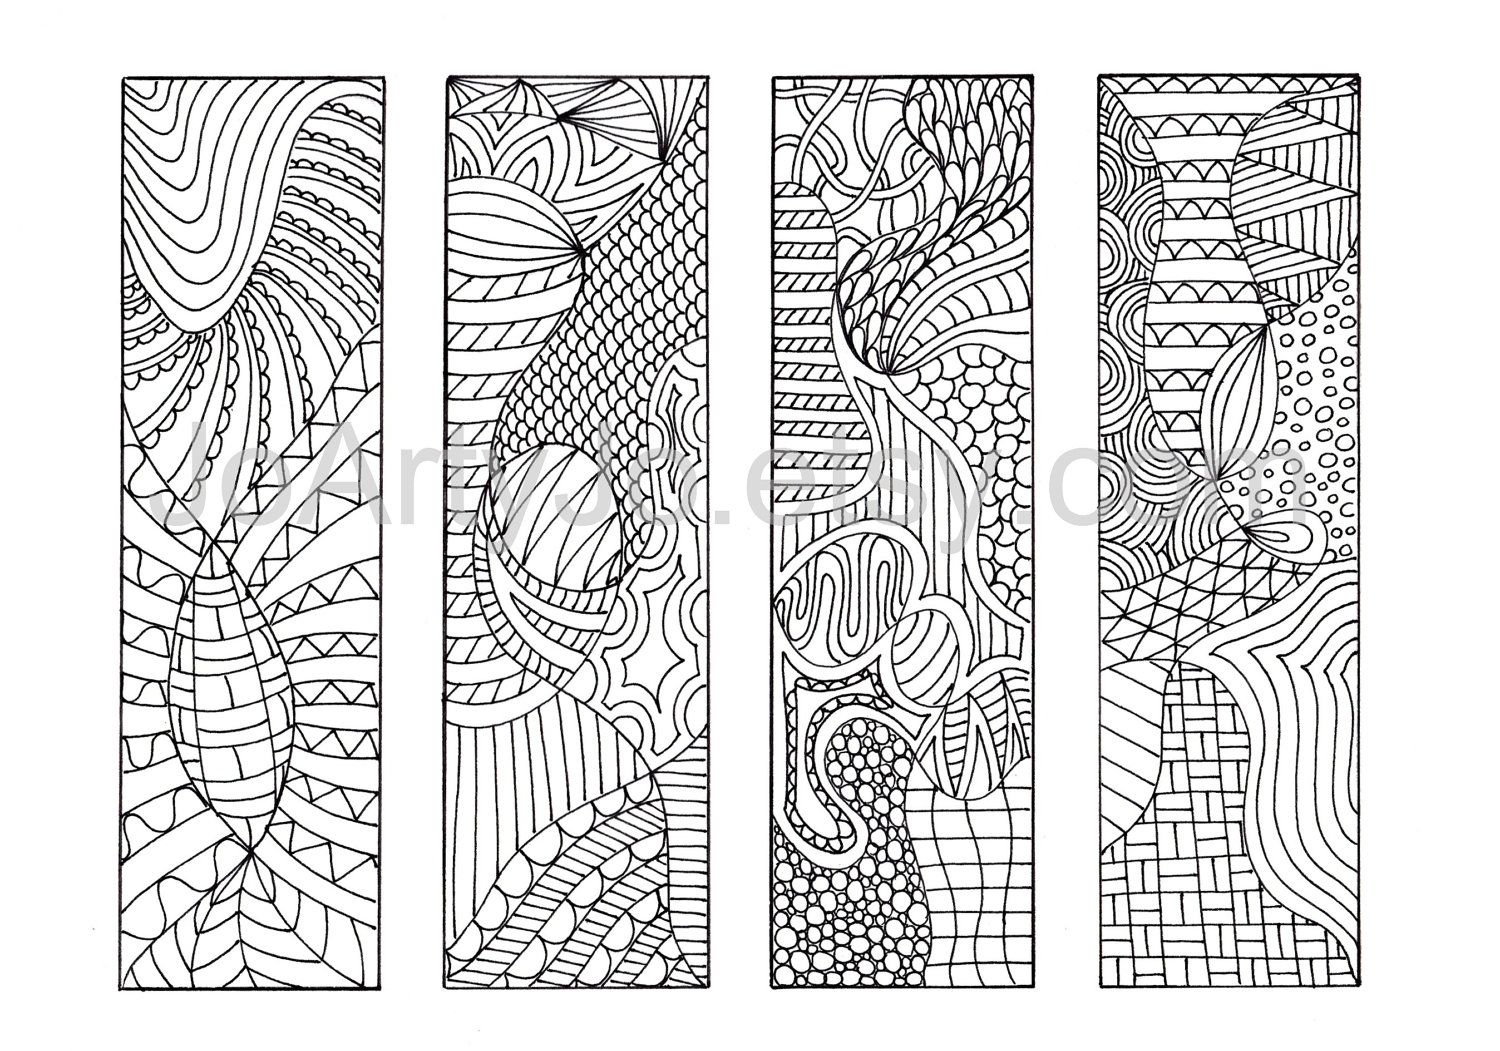 Zen doodle colour - Diy Zentangle Inspired Bookmarks Zendoodle Printable Coloring Digital Download Sheet 4 4 00